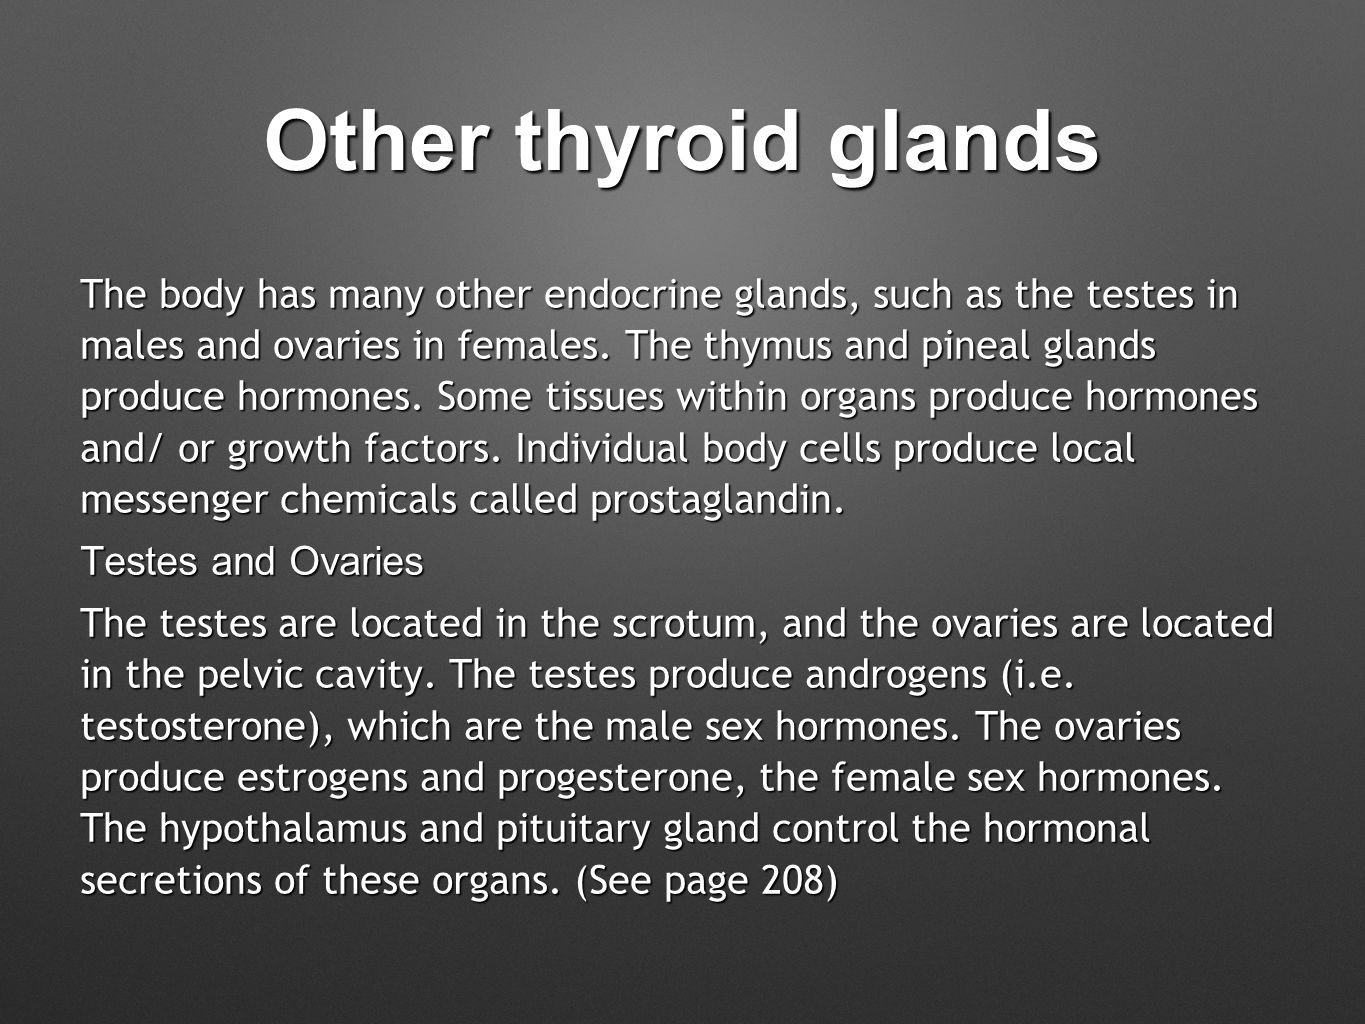 Other thyroid glands